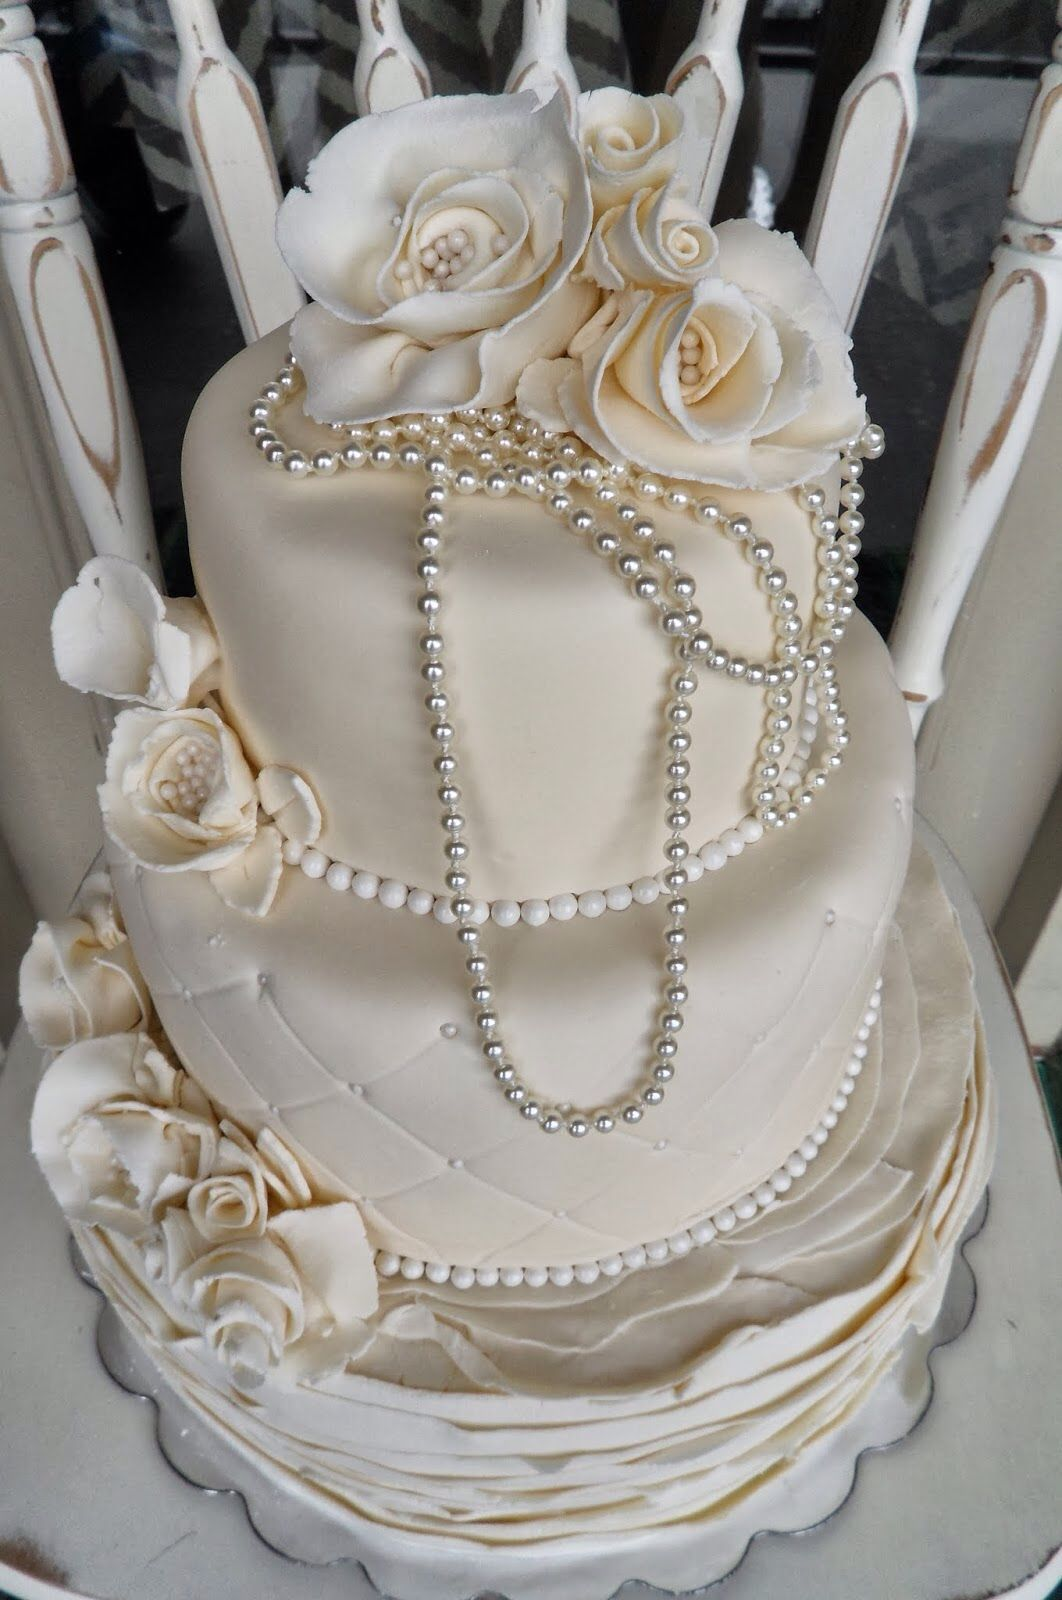 Vintage Wedding Cake with pearls | my inspirational ...